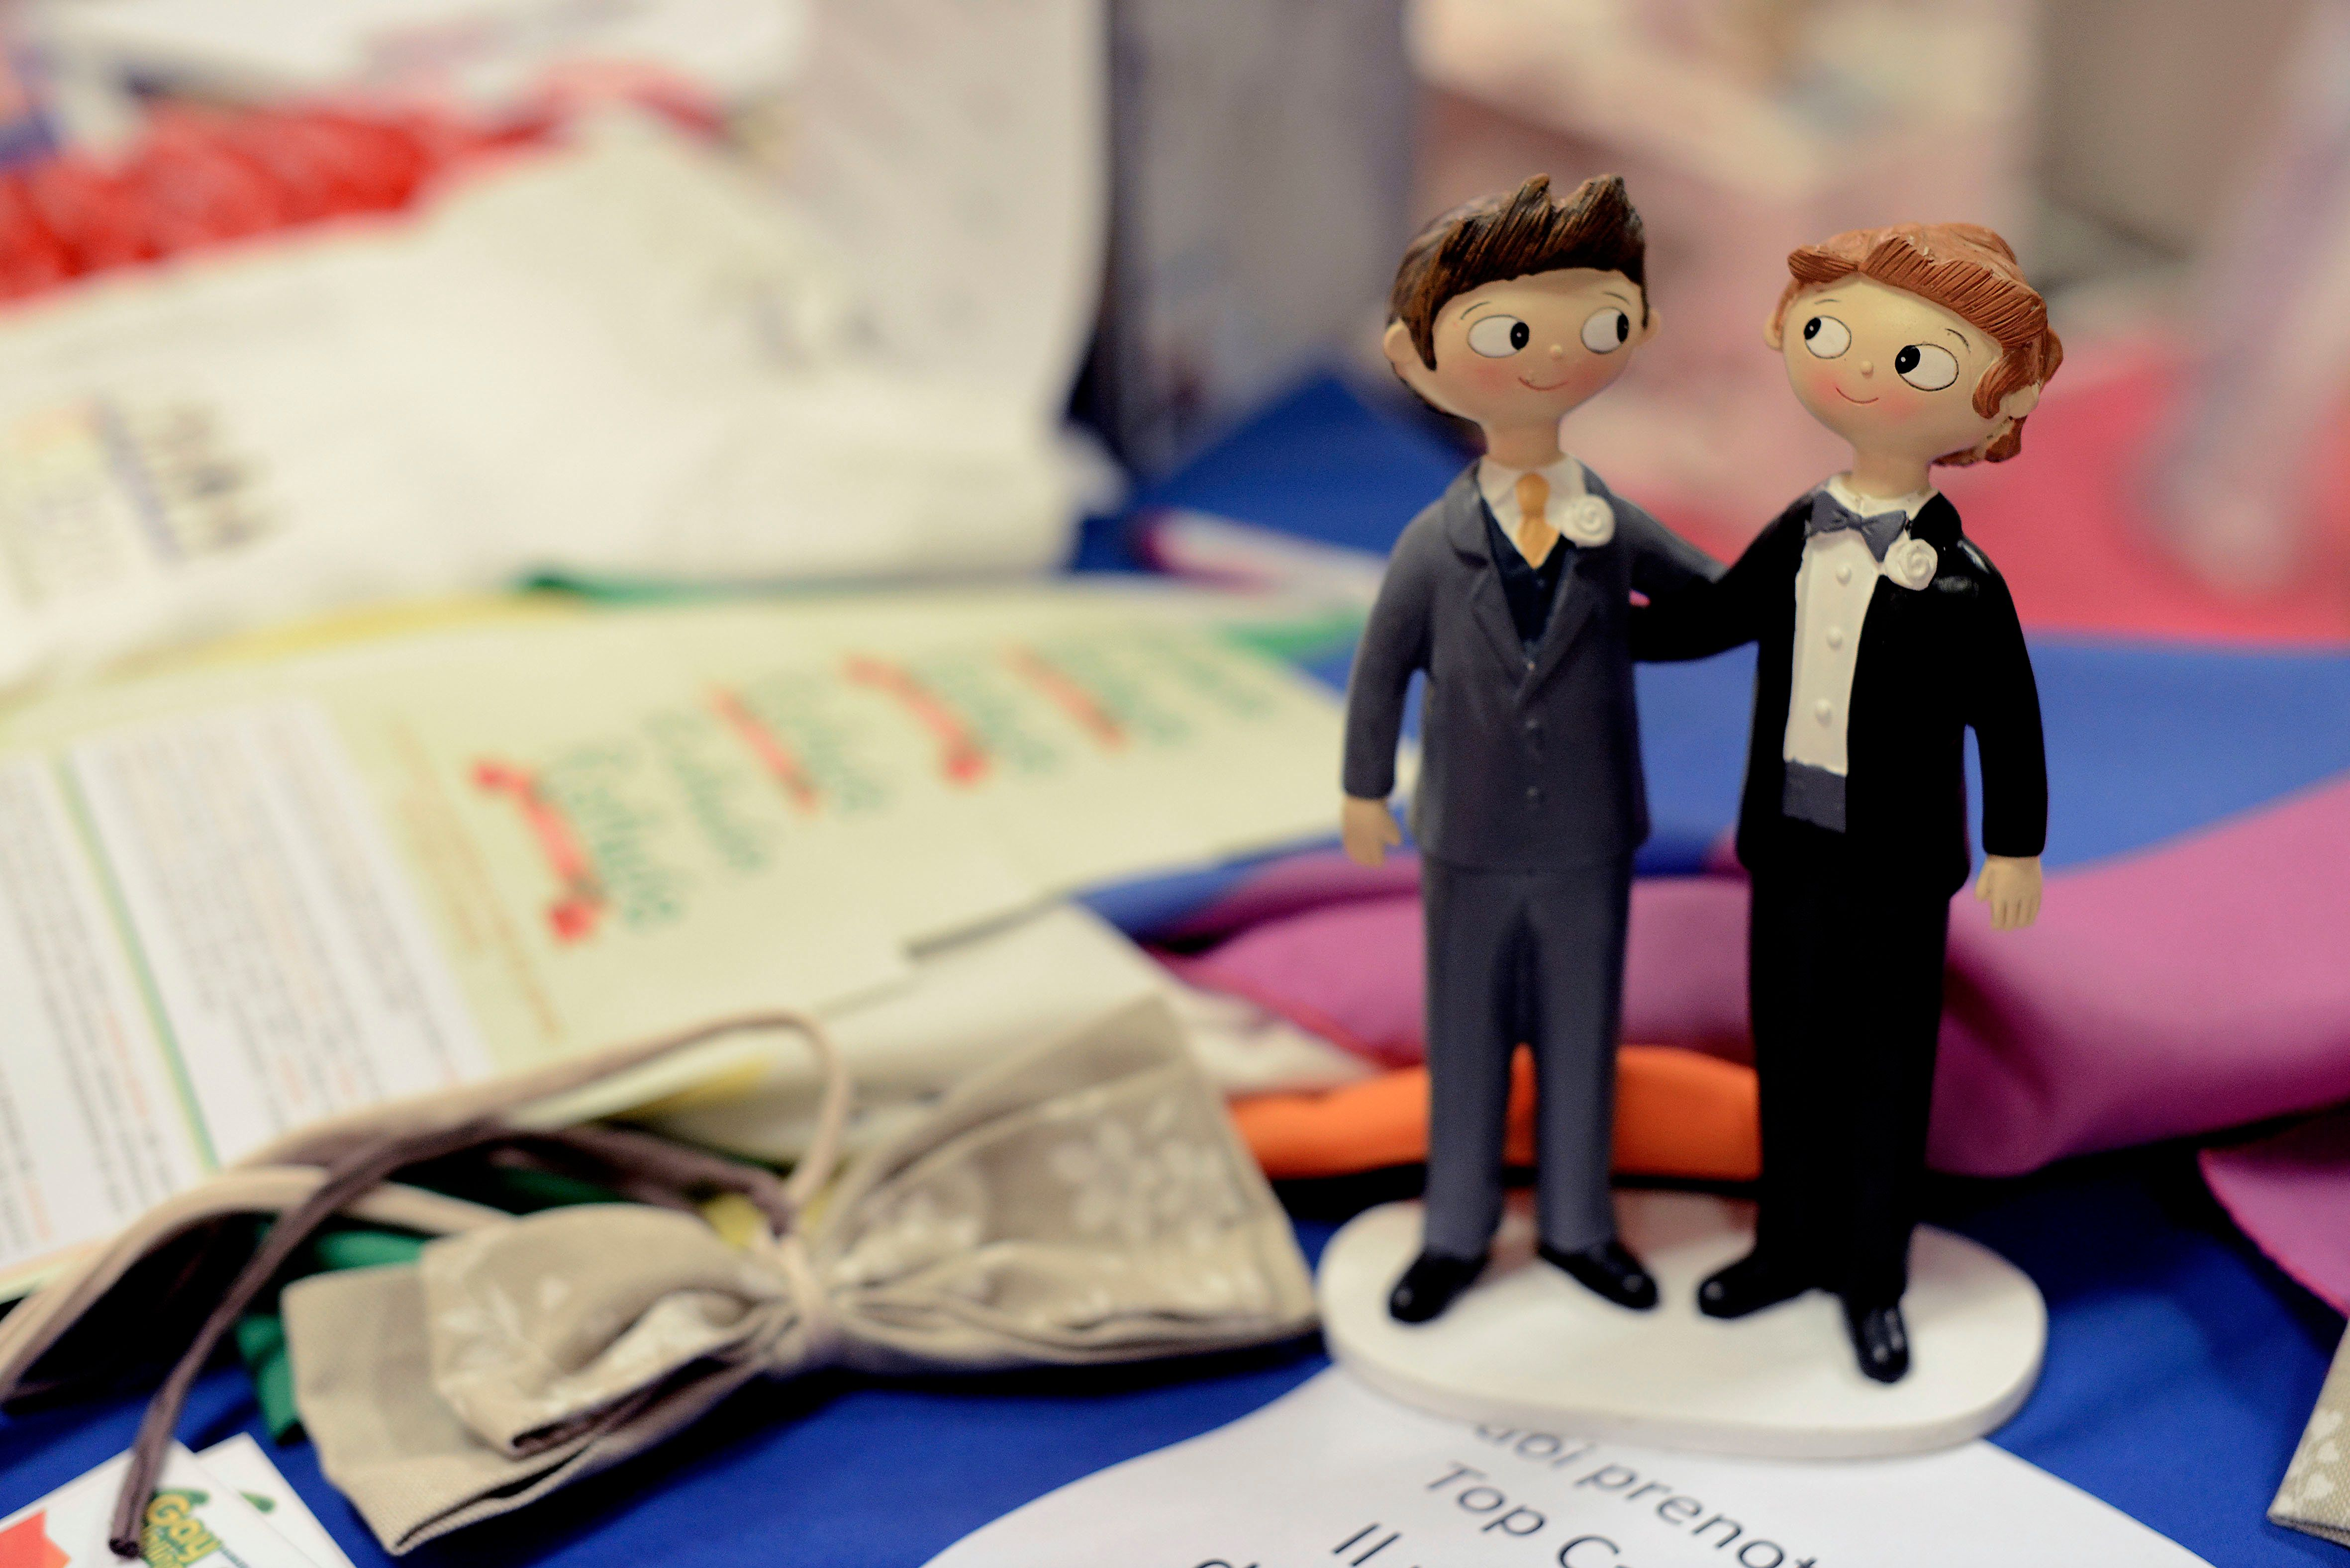 ROME, ITALY - OCTOBER 21: Inauguration of the Gay Wedding Fair the first exhibition in Italy dedicated to civil unions on October 21, 2016 in Rome, Italy. (Photo by Simona Granati/Corbis via Getty Images)